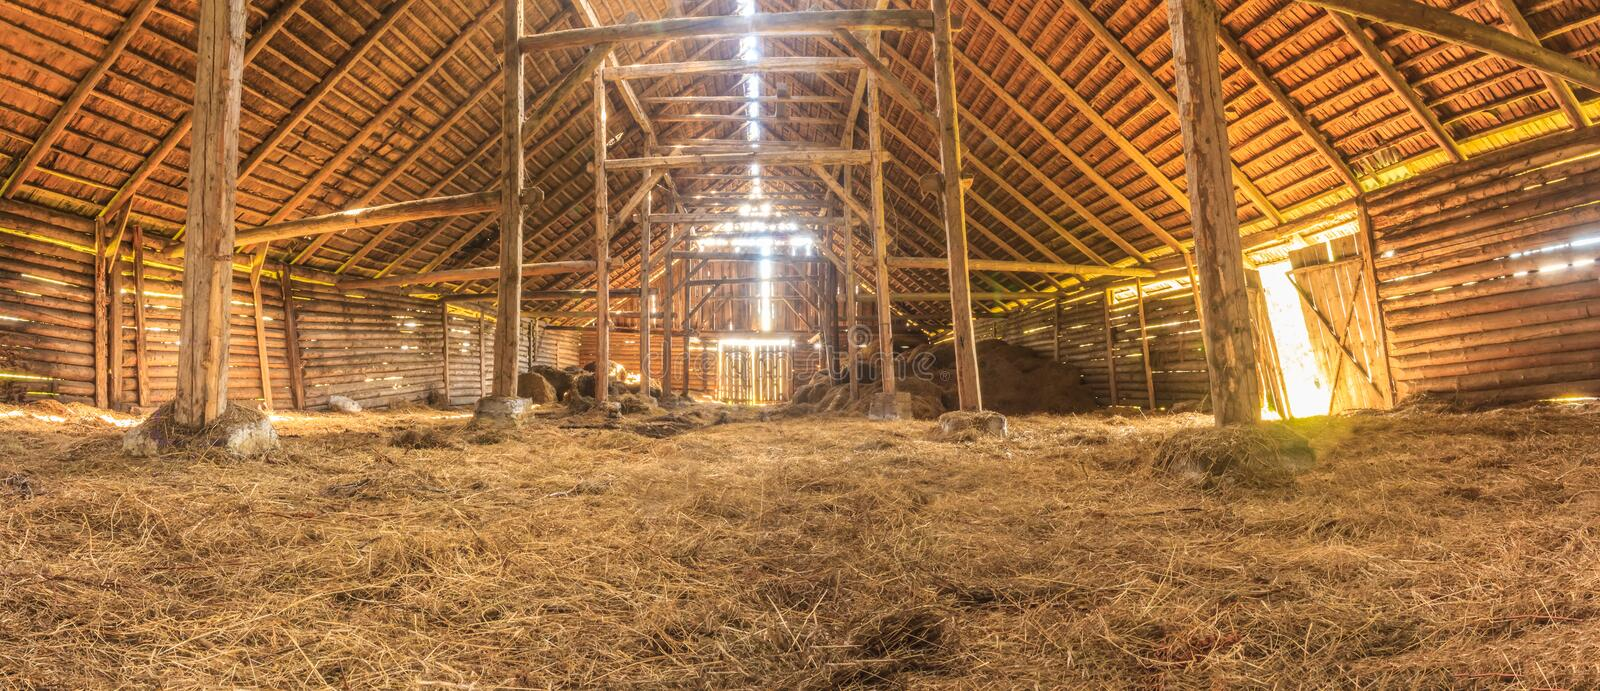 Download Panorama Interior Of Old Farm Barn With Straw Stock Photo